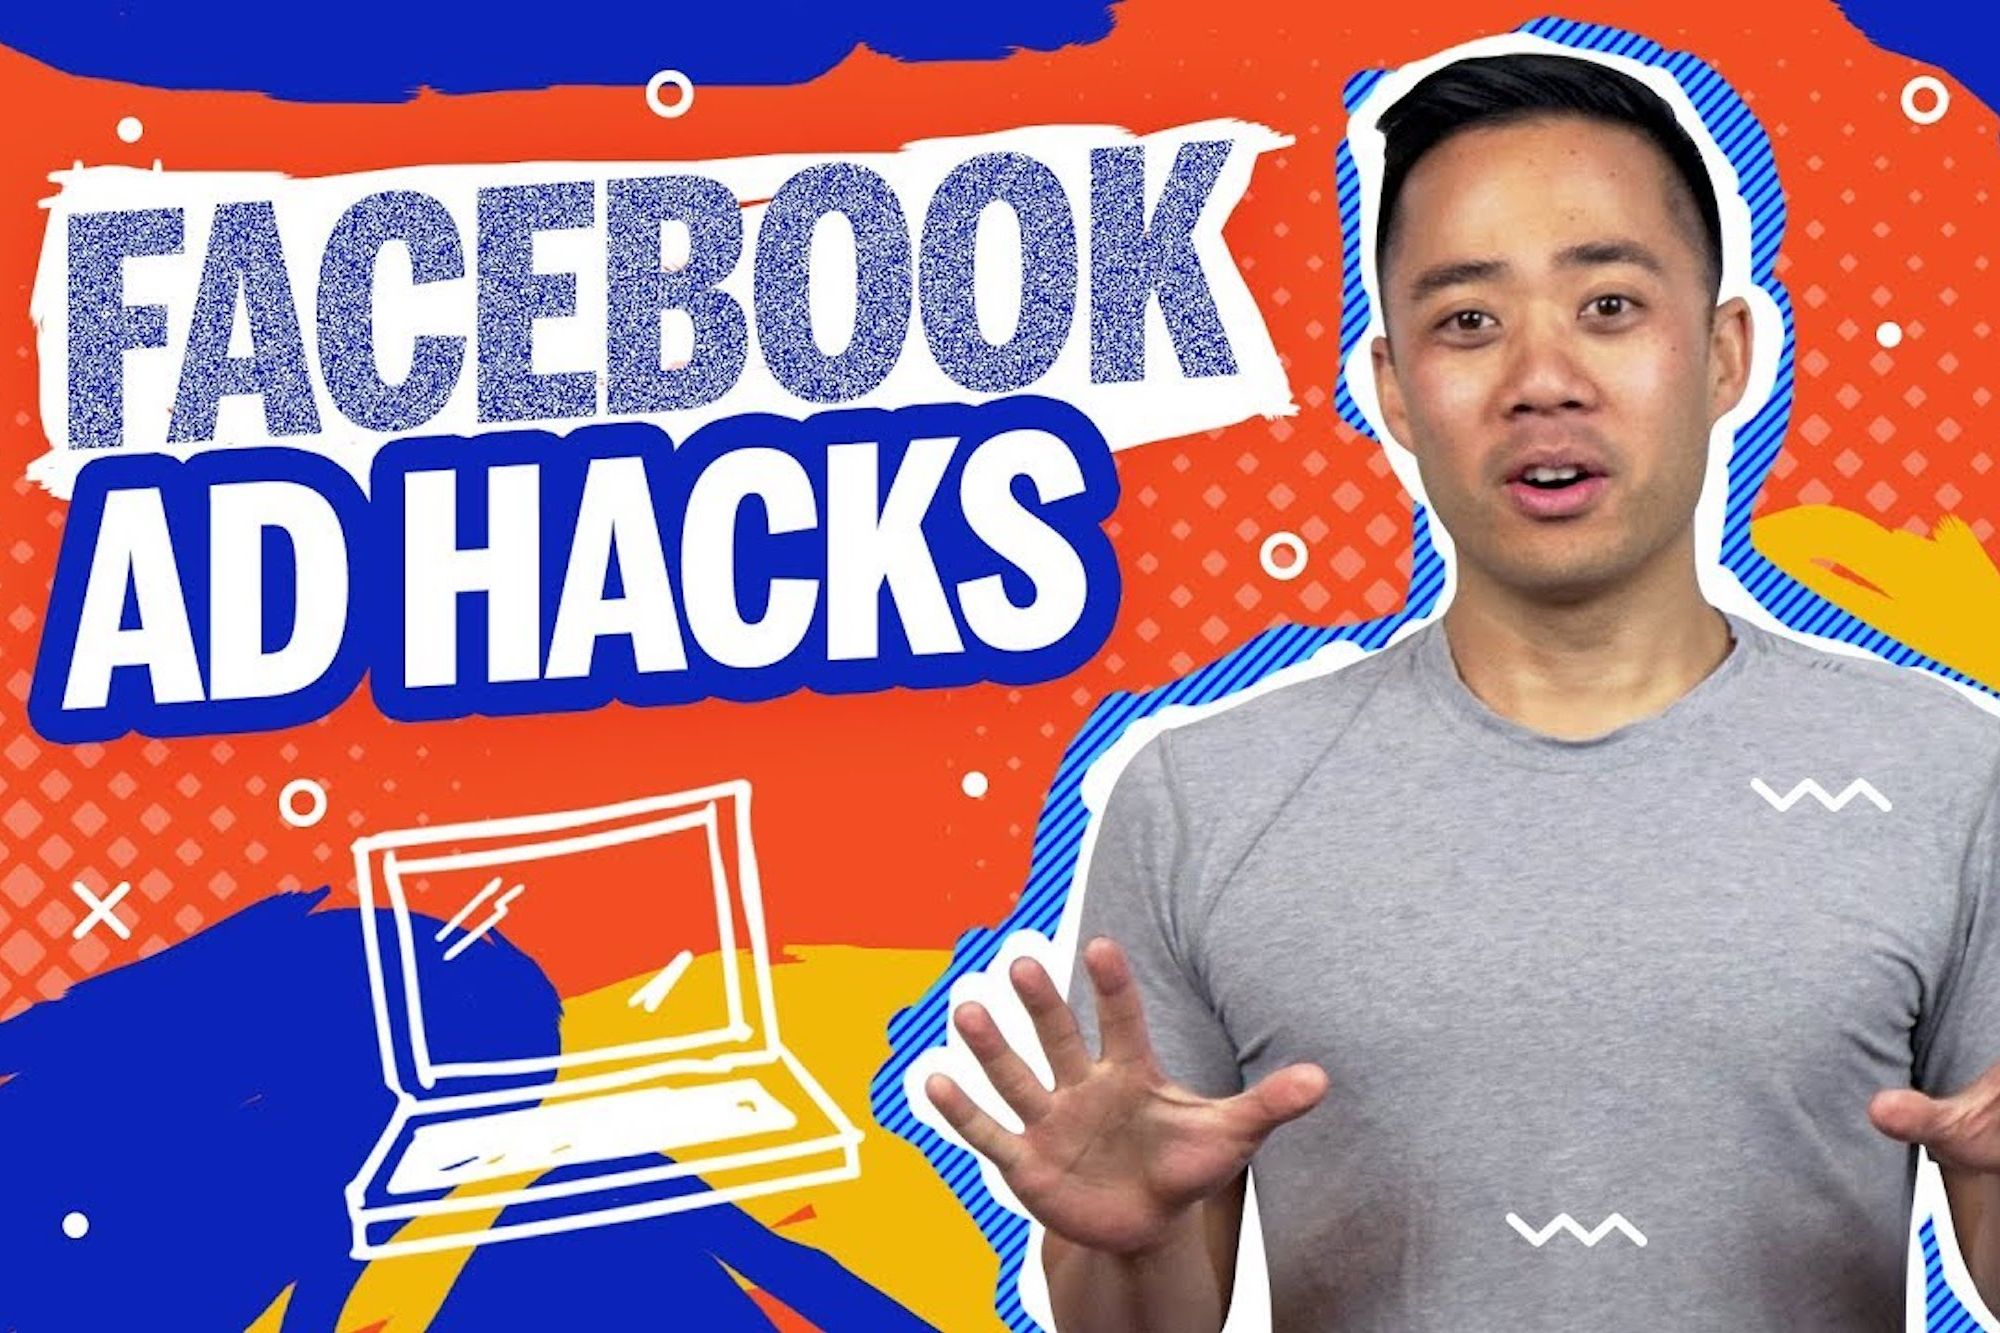 How to Get the Most Out of Your Facebook Ads